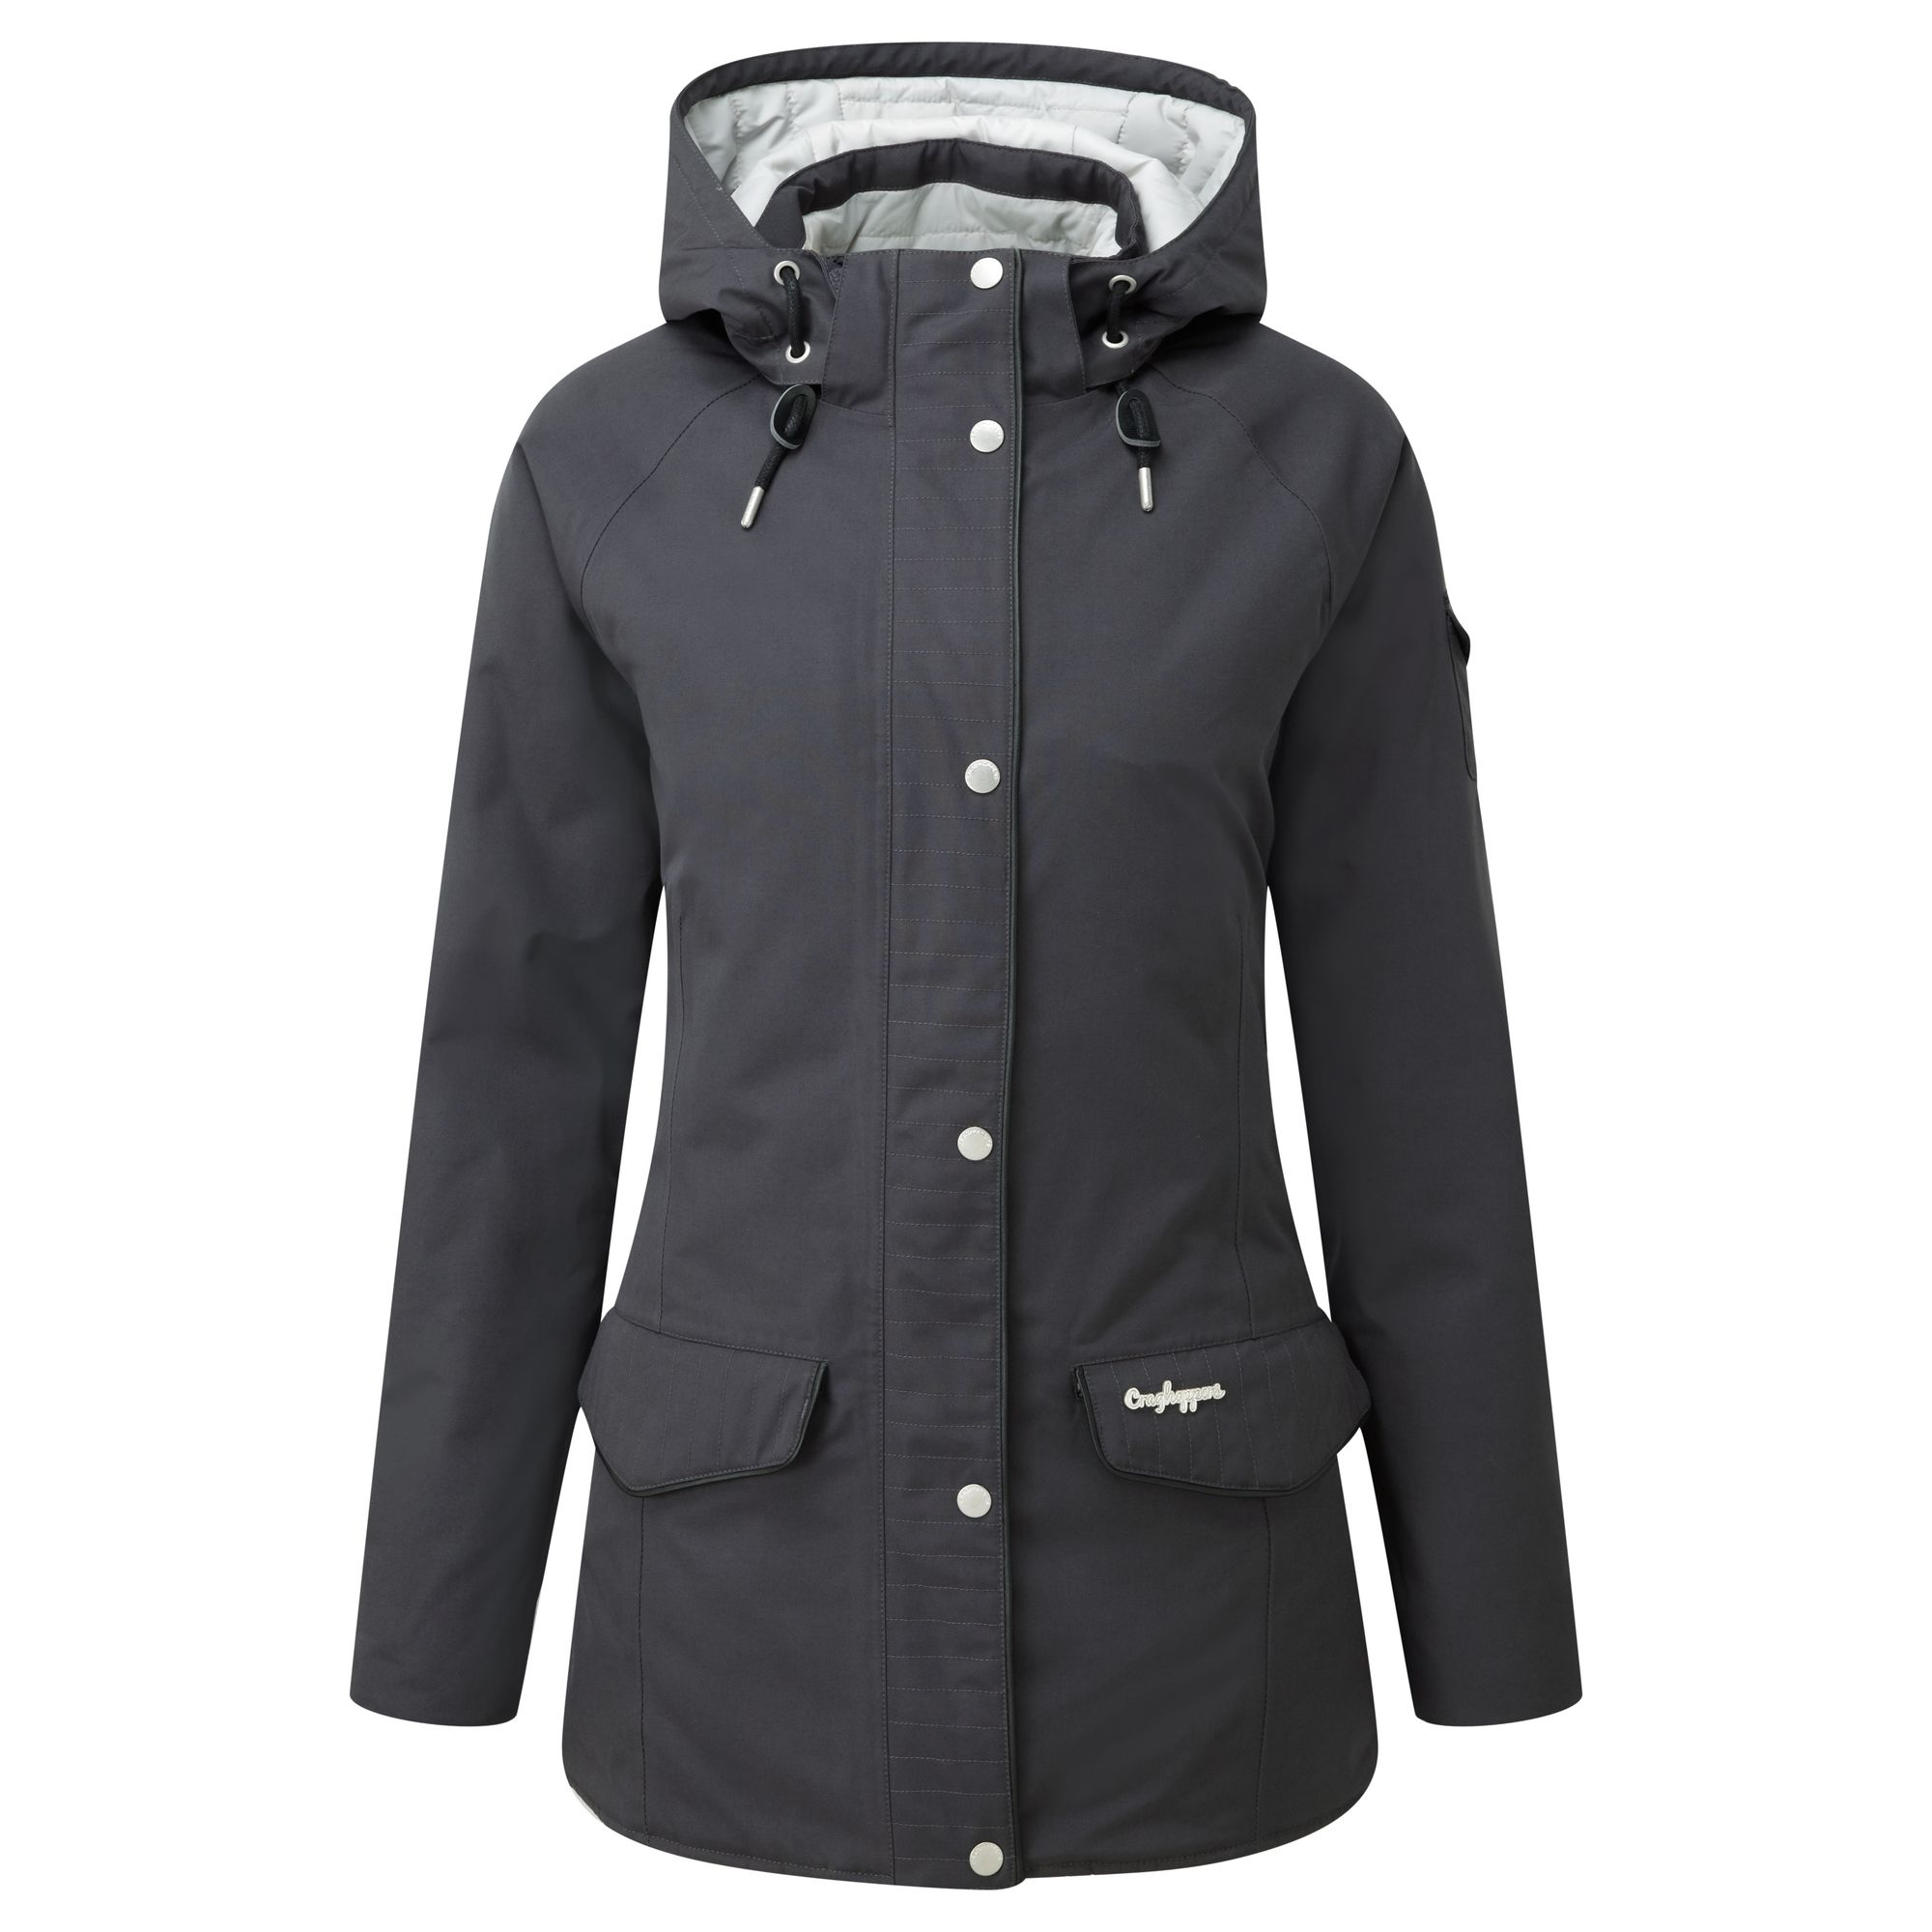 Our women's waterproof jackets come in a wide range of styles, each with varying degrees of technical specifications, including breathability and windproofing. Suitable for a whole host of outdoor activities, whether you're hiking up a mountain or simply popping to the shops we have jacket for the job.